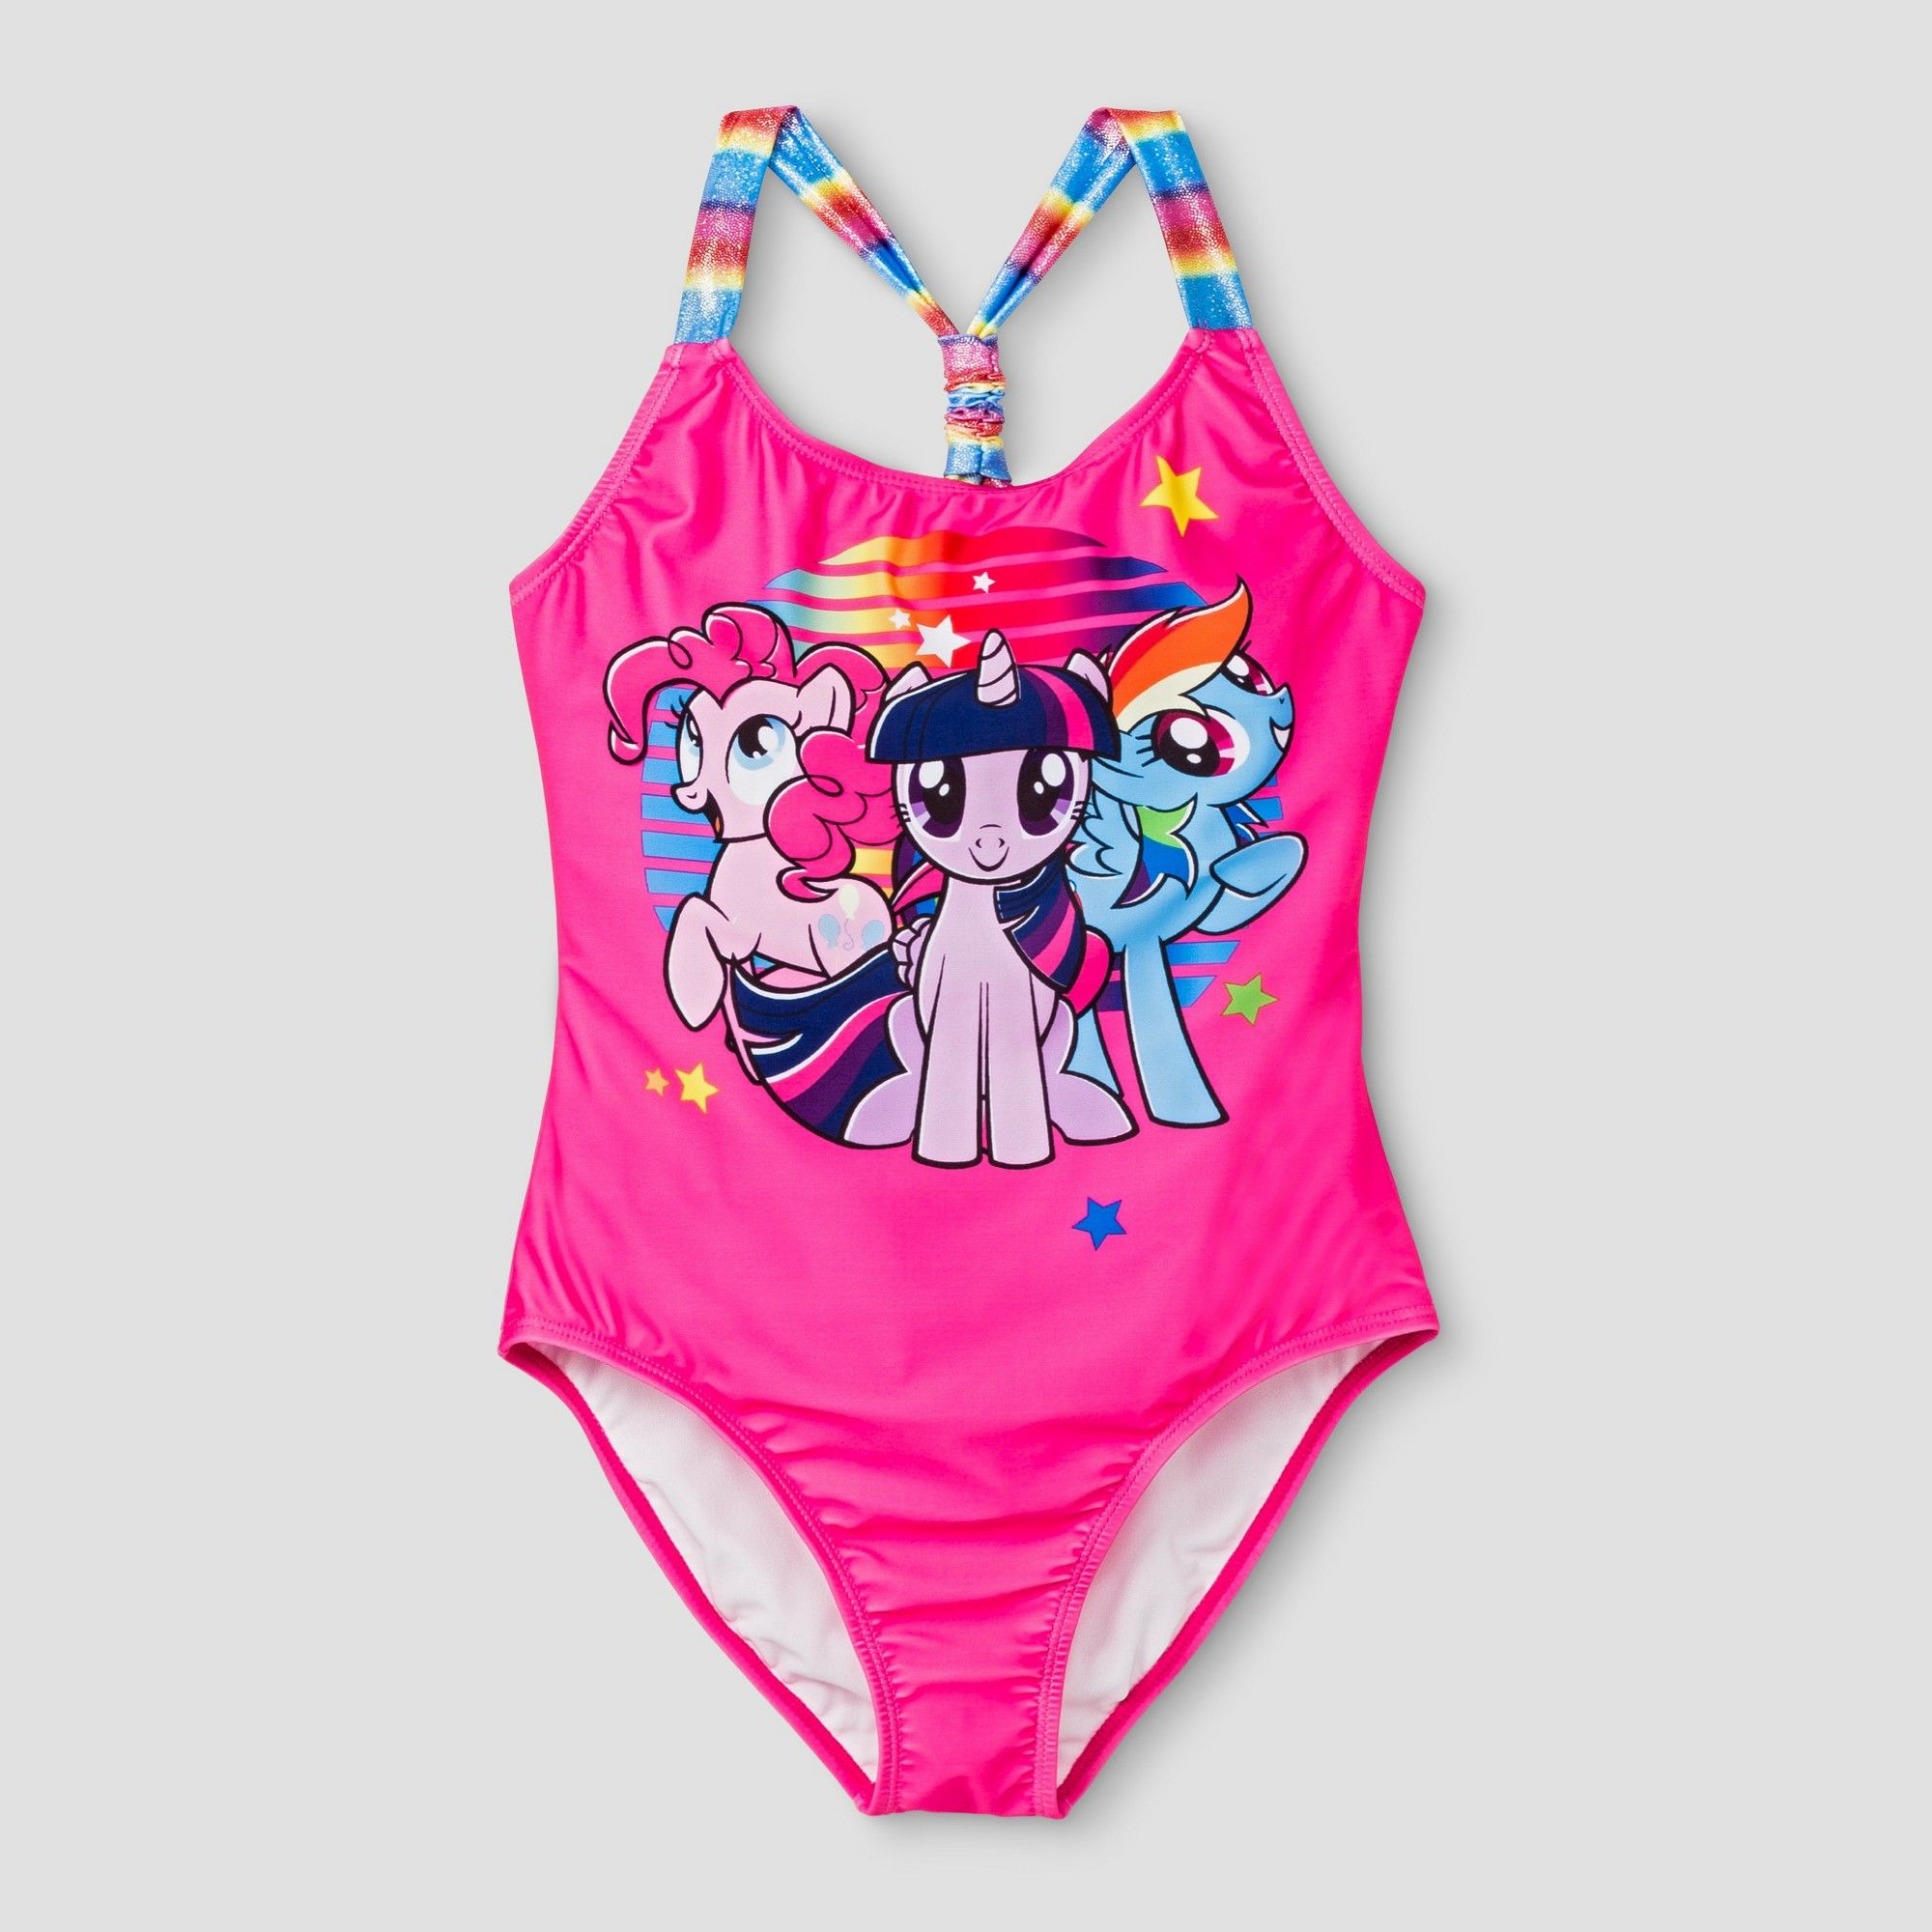 2f39abbe7 Girls  My Little Pony One Piece Swimsuit M - Pink